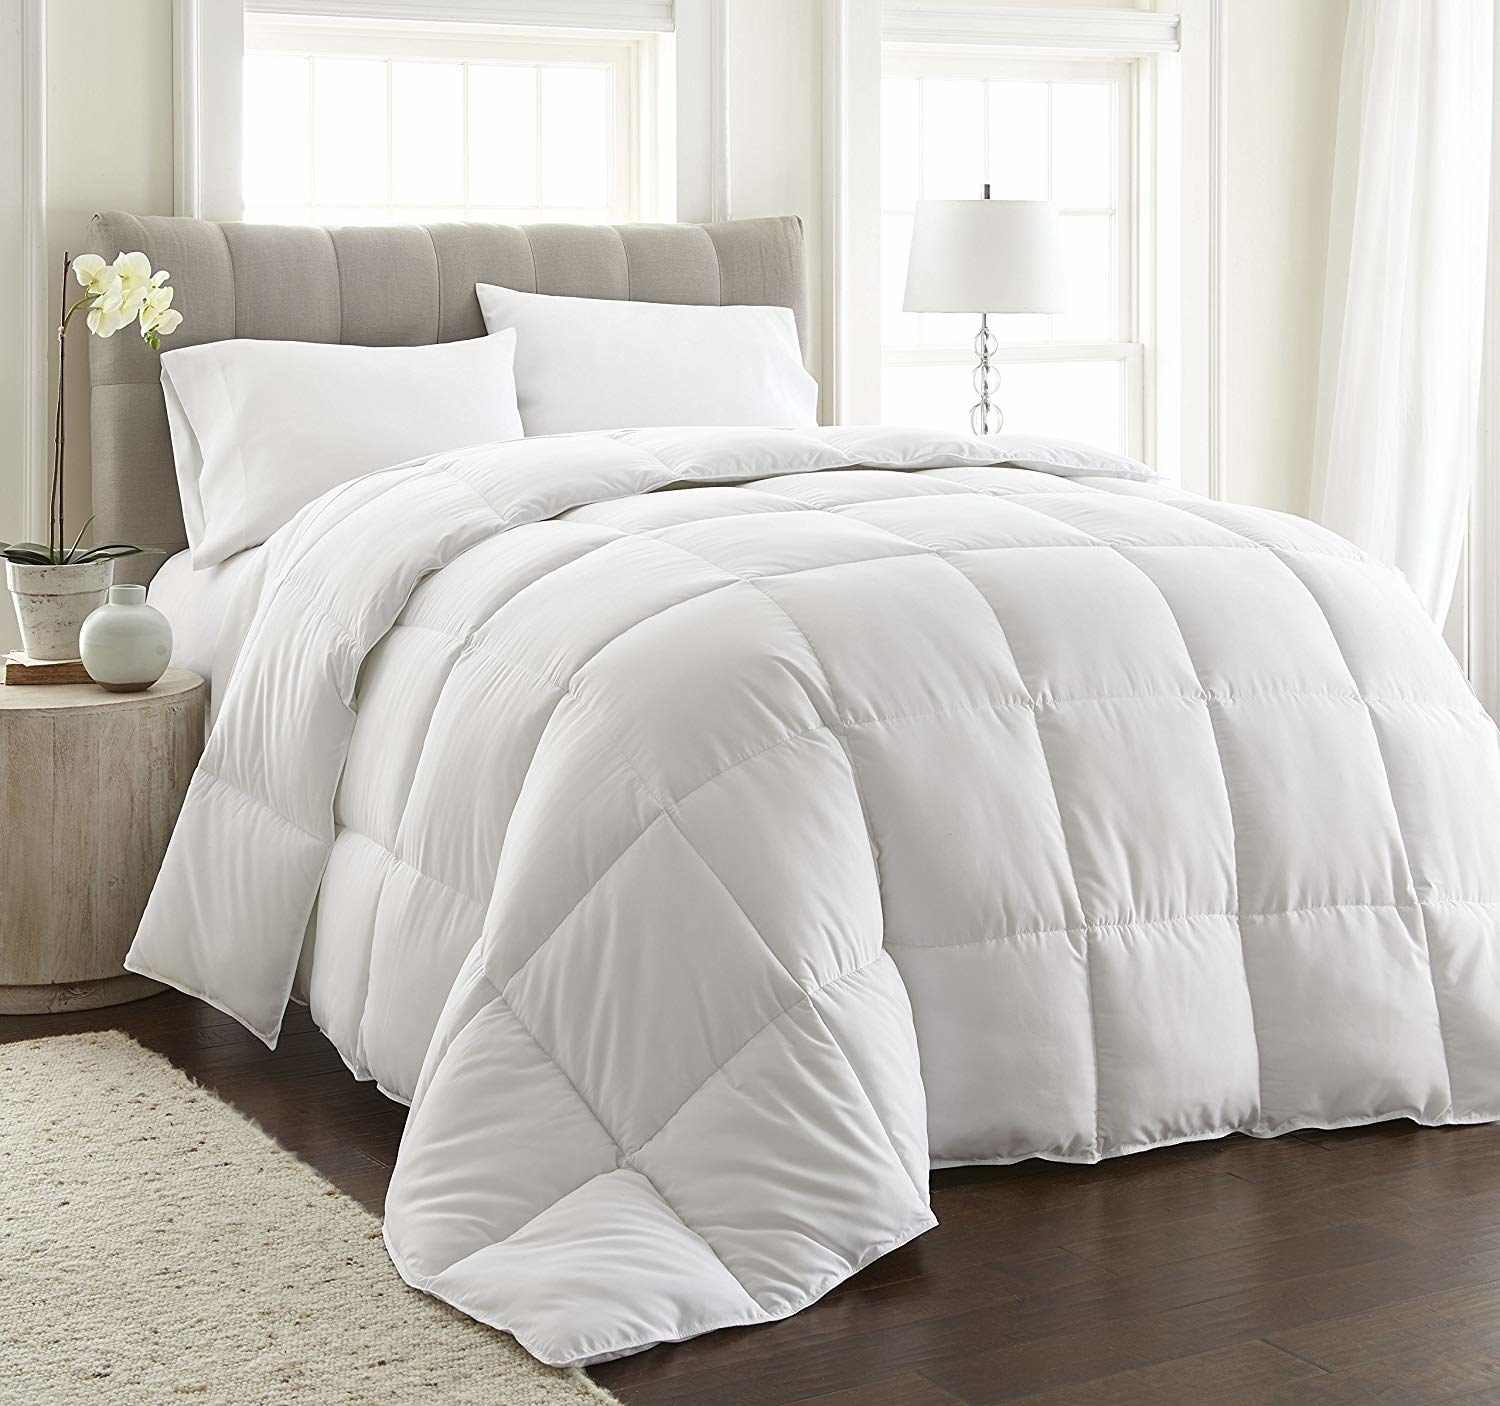 Quilted plush duvet without cover